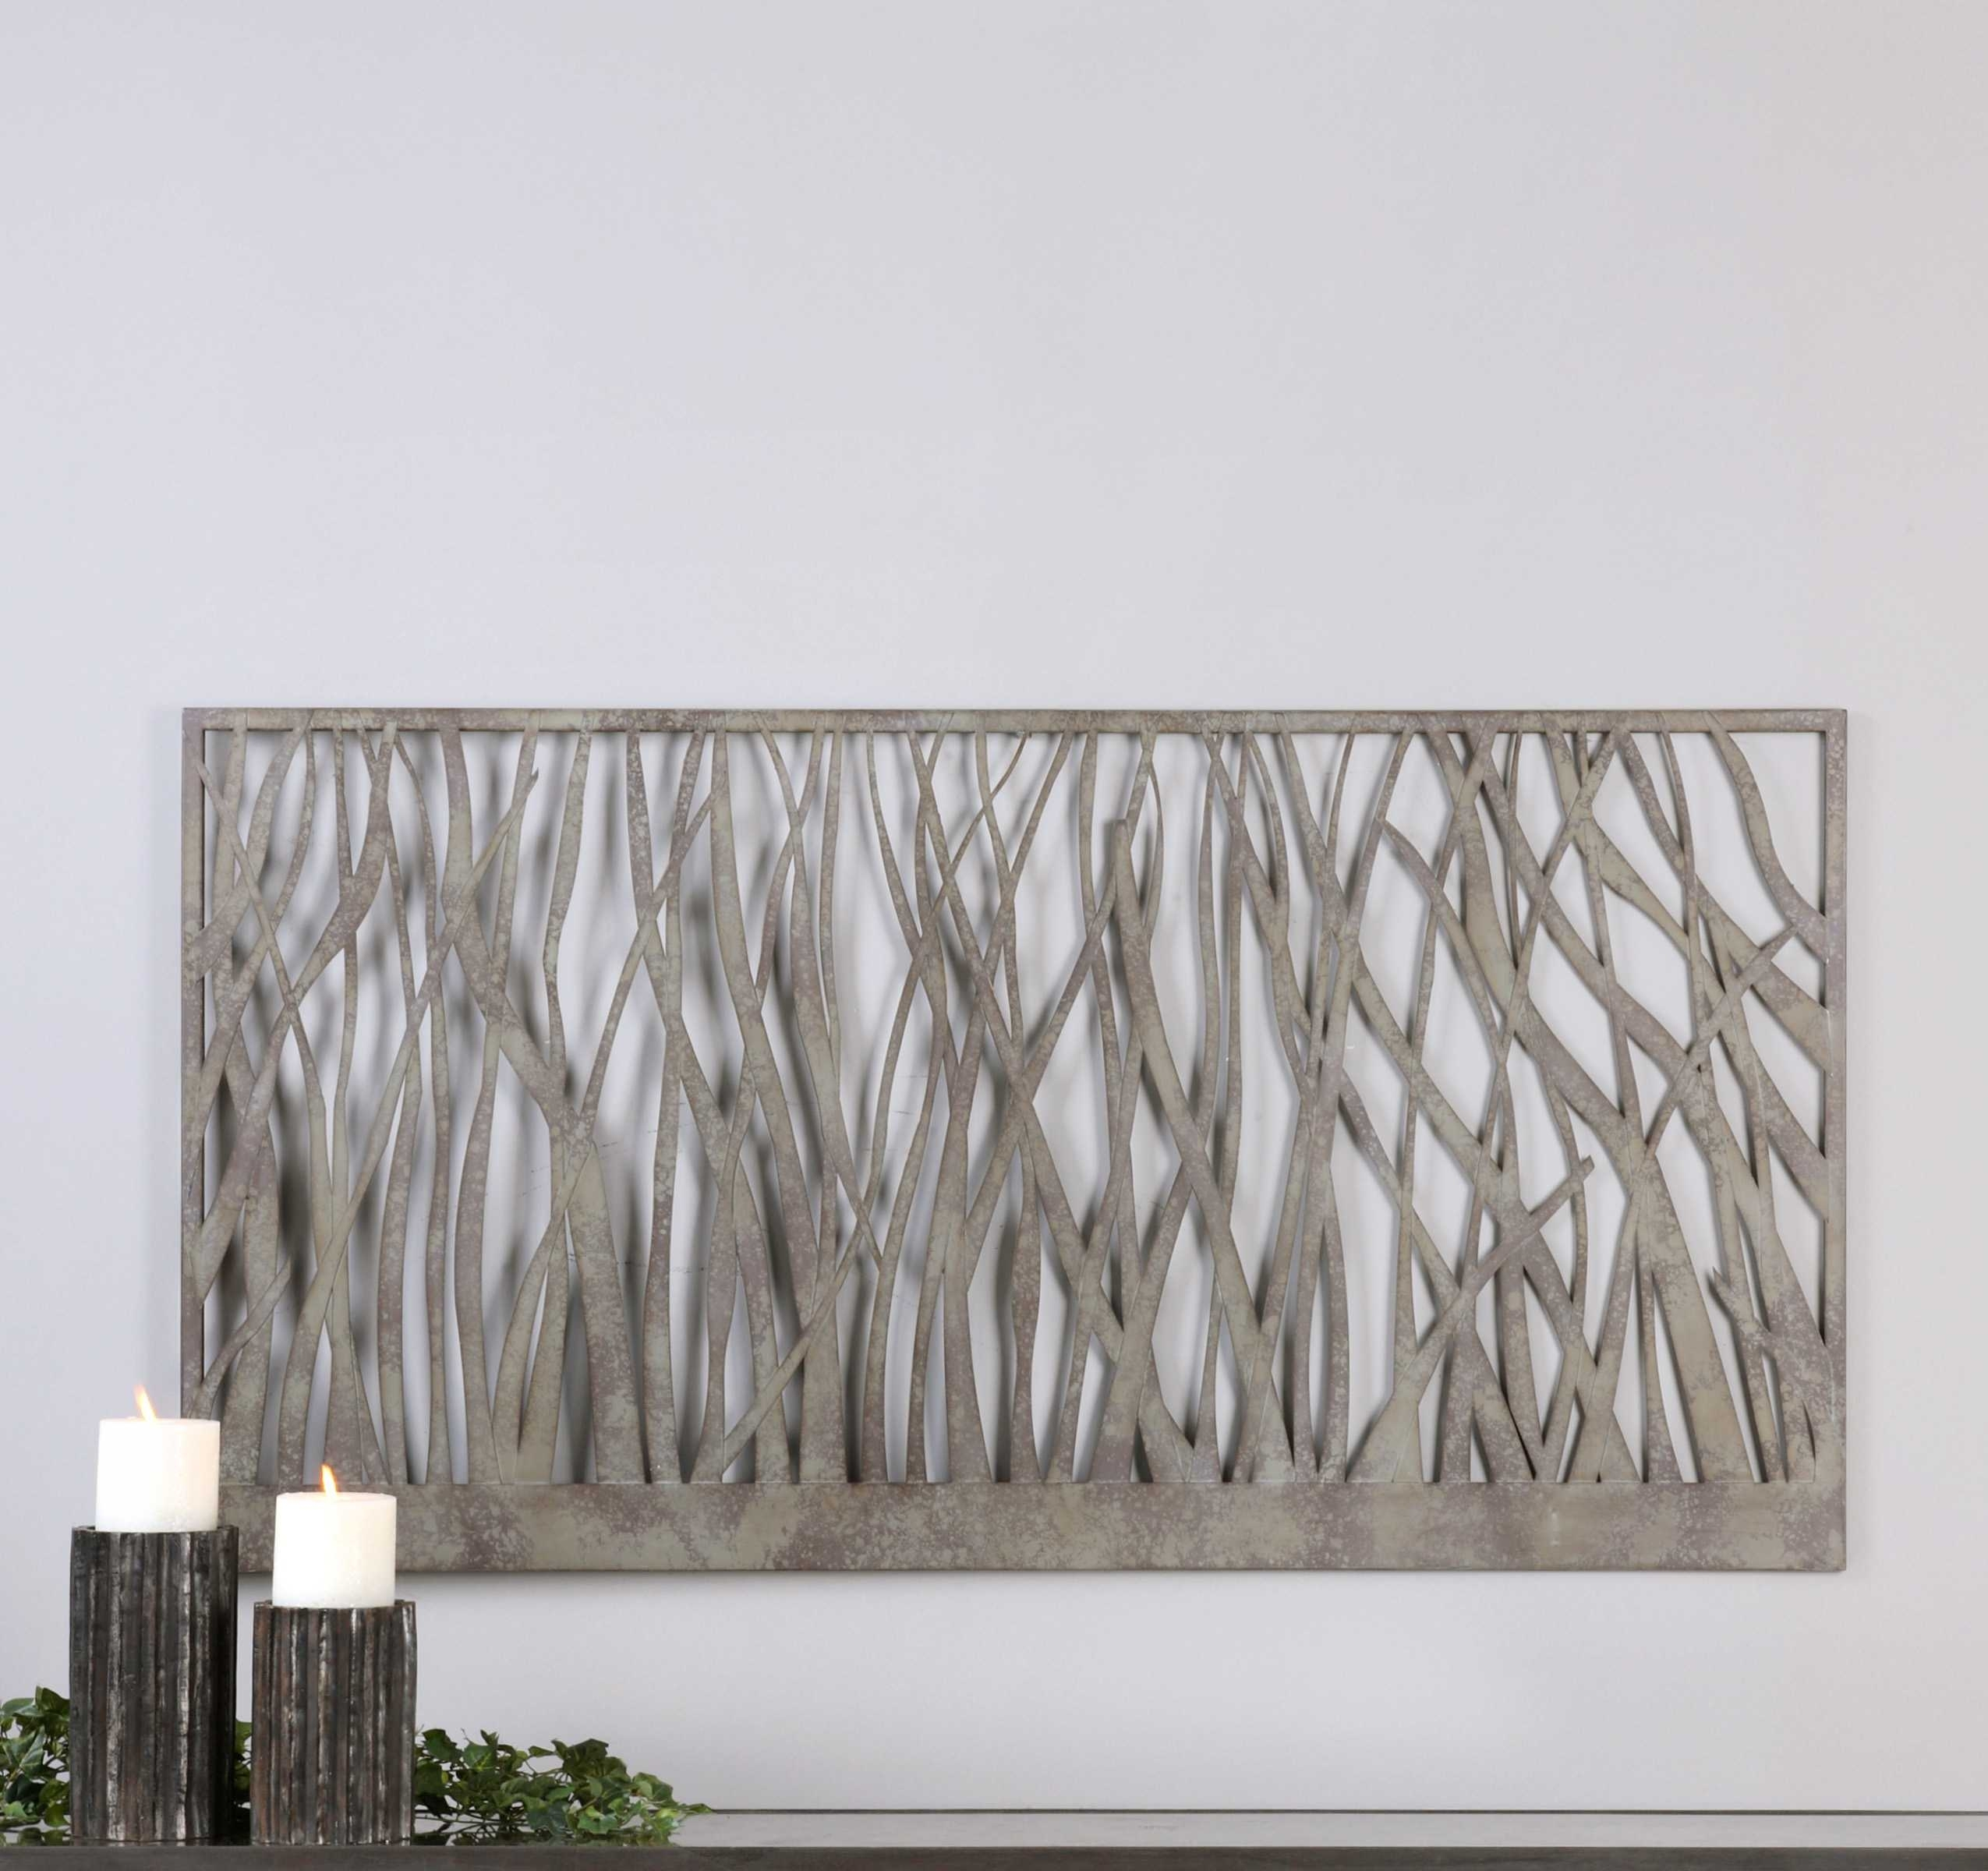 Uttermost Amadahy Metal Wall Art | Ut13931 Inside Latest Uttermost Wall Art (View 7 of 20)